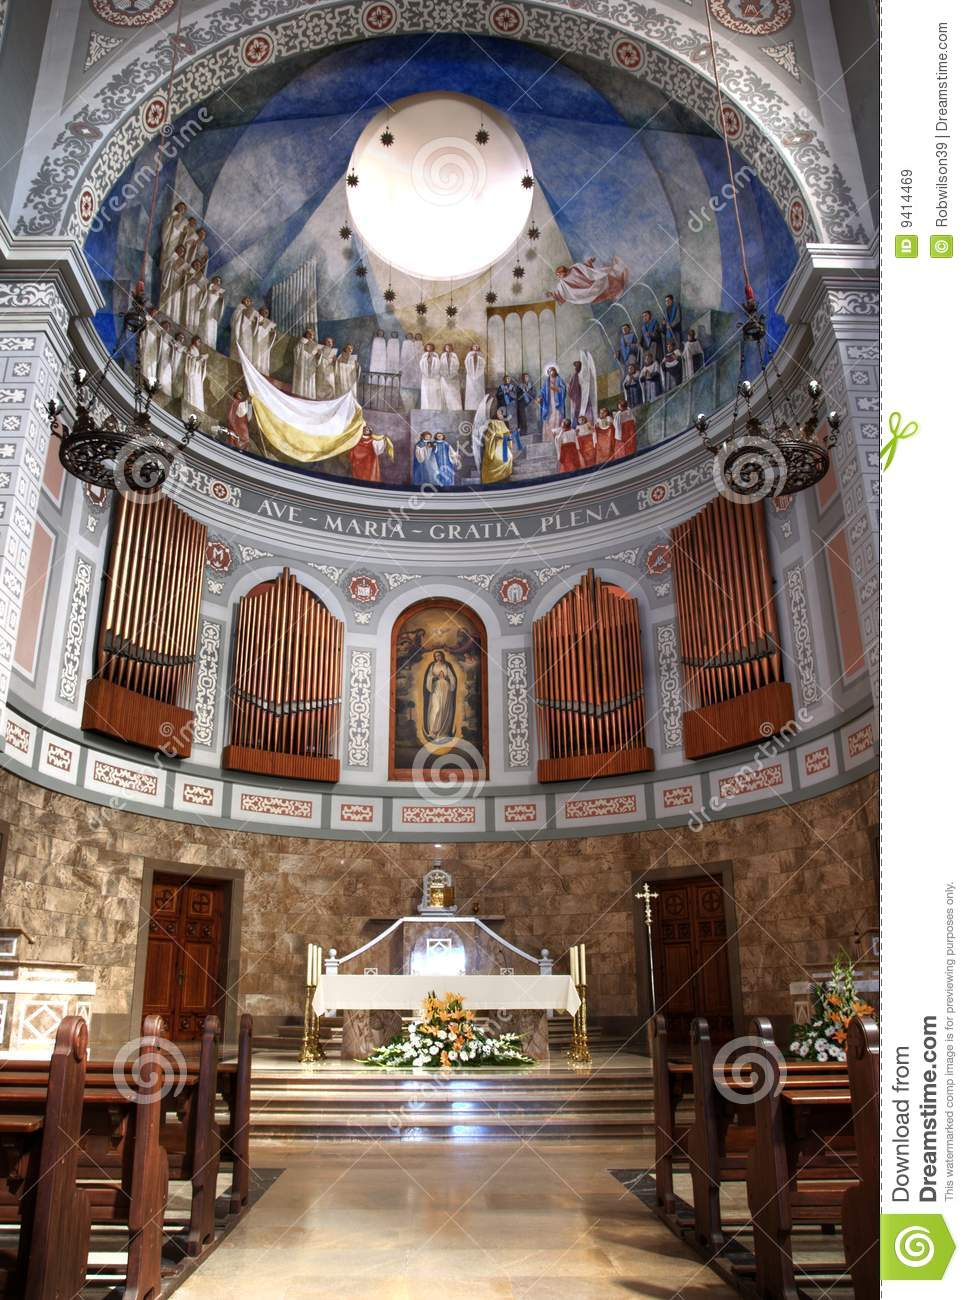 Church Alter in Europe stock image Image of decorated  9414469